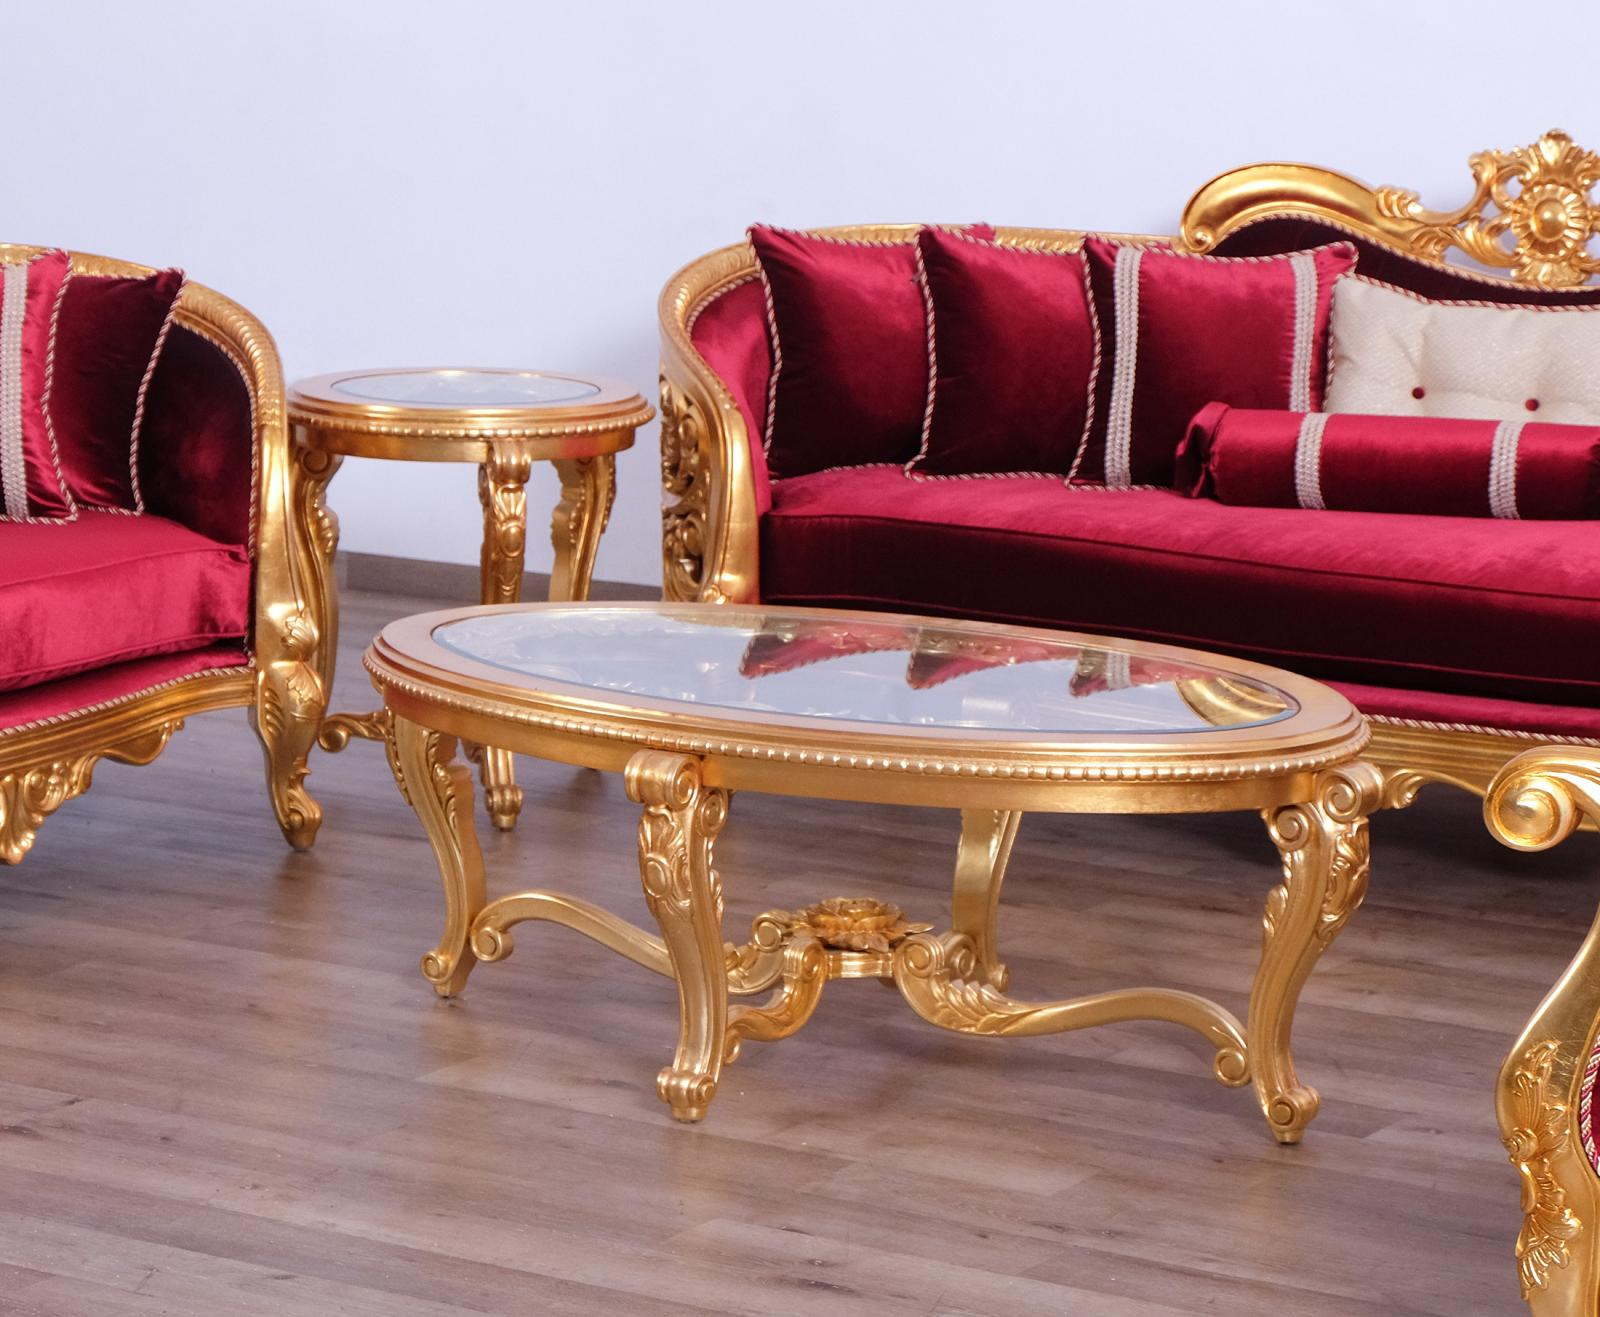 Classic  Traditional Gold  Red  Antique   Red Wood  Solid Hardwood and  Coffee Table Set EUROPEAN FURNITURE 30015-CT-Set-2